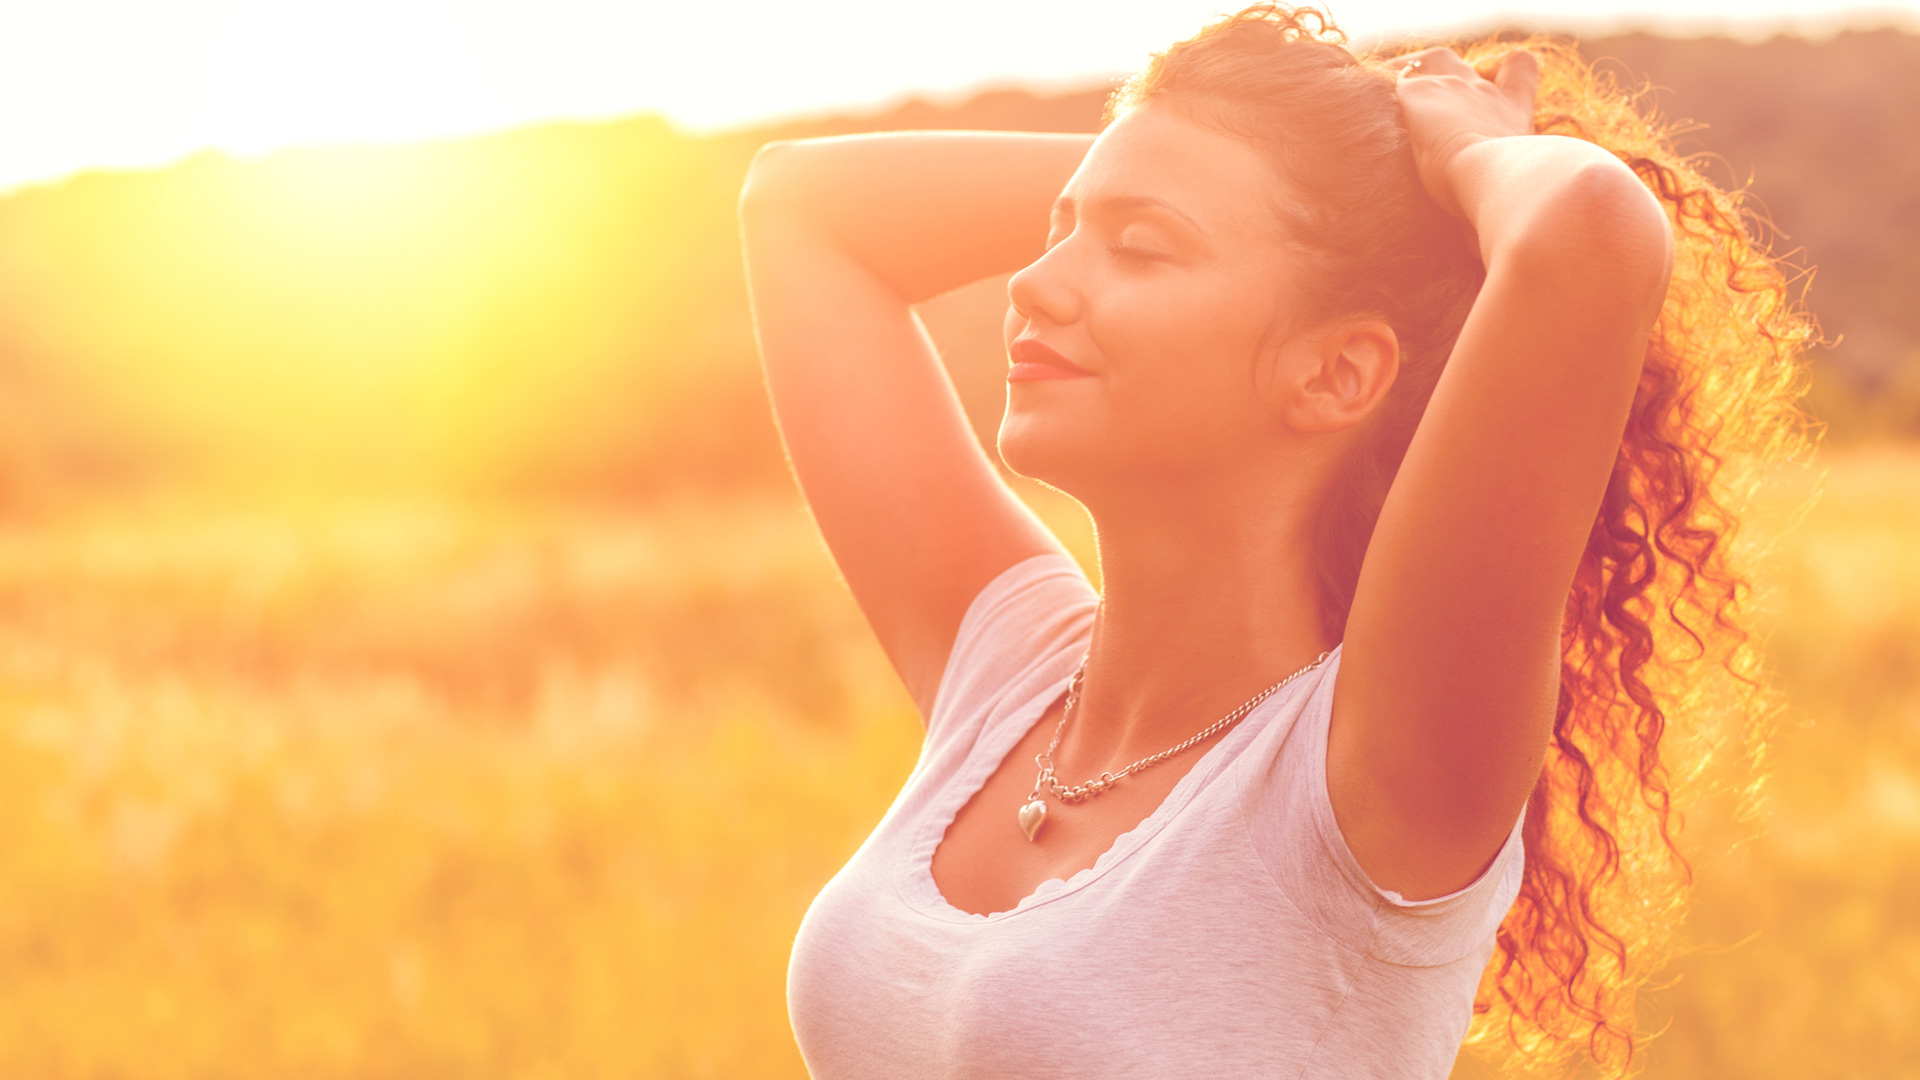 Studies show that there may be a correlation between moderate amounts of vitamin D and decreased risk of breast cancer.